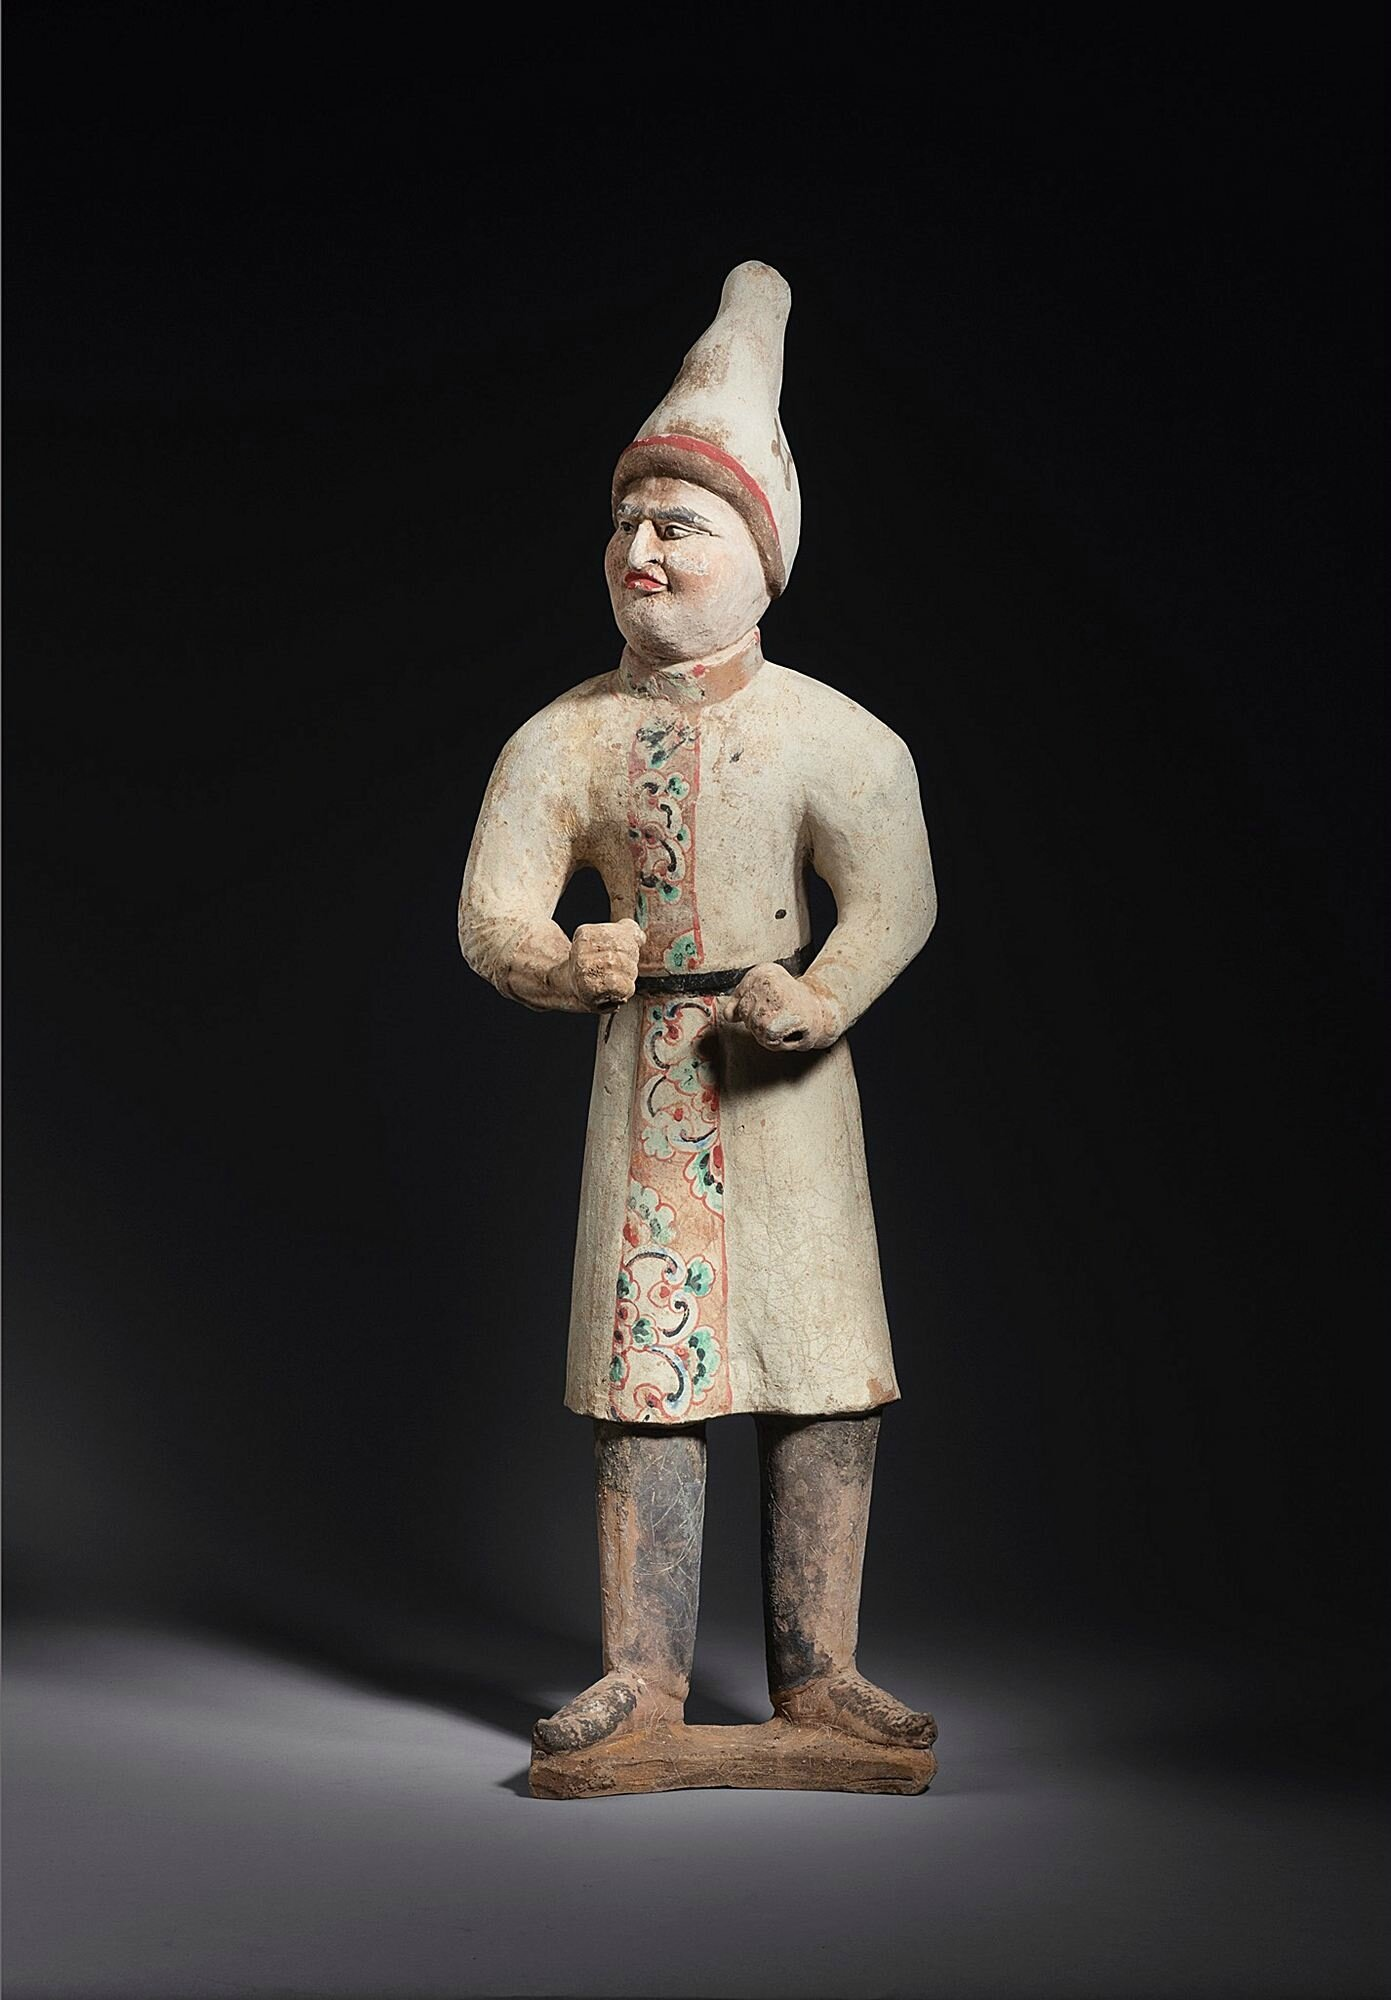 Pottery figure of a foreign groom with a pointed hat, China, Tang dynasty, 7th-8th century